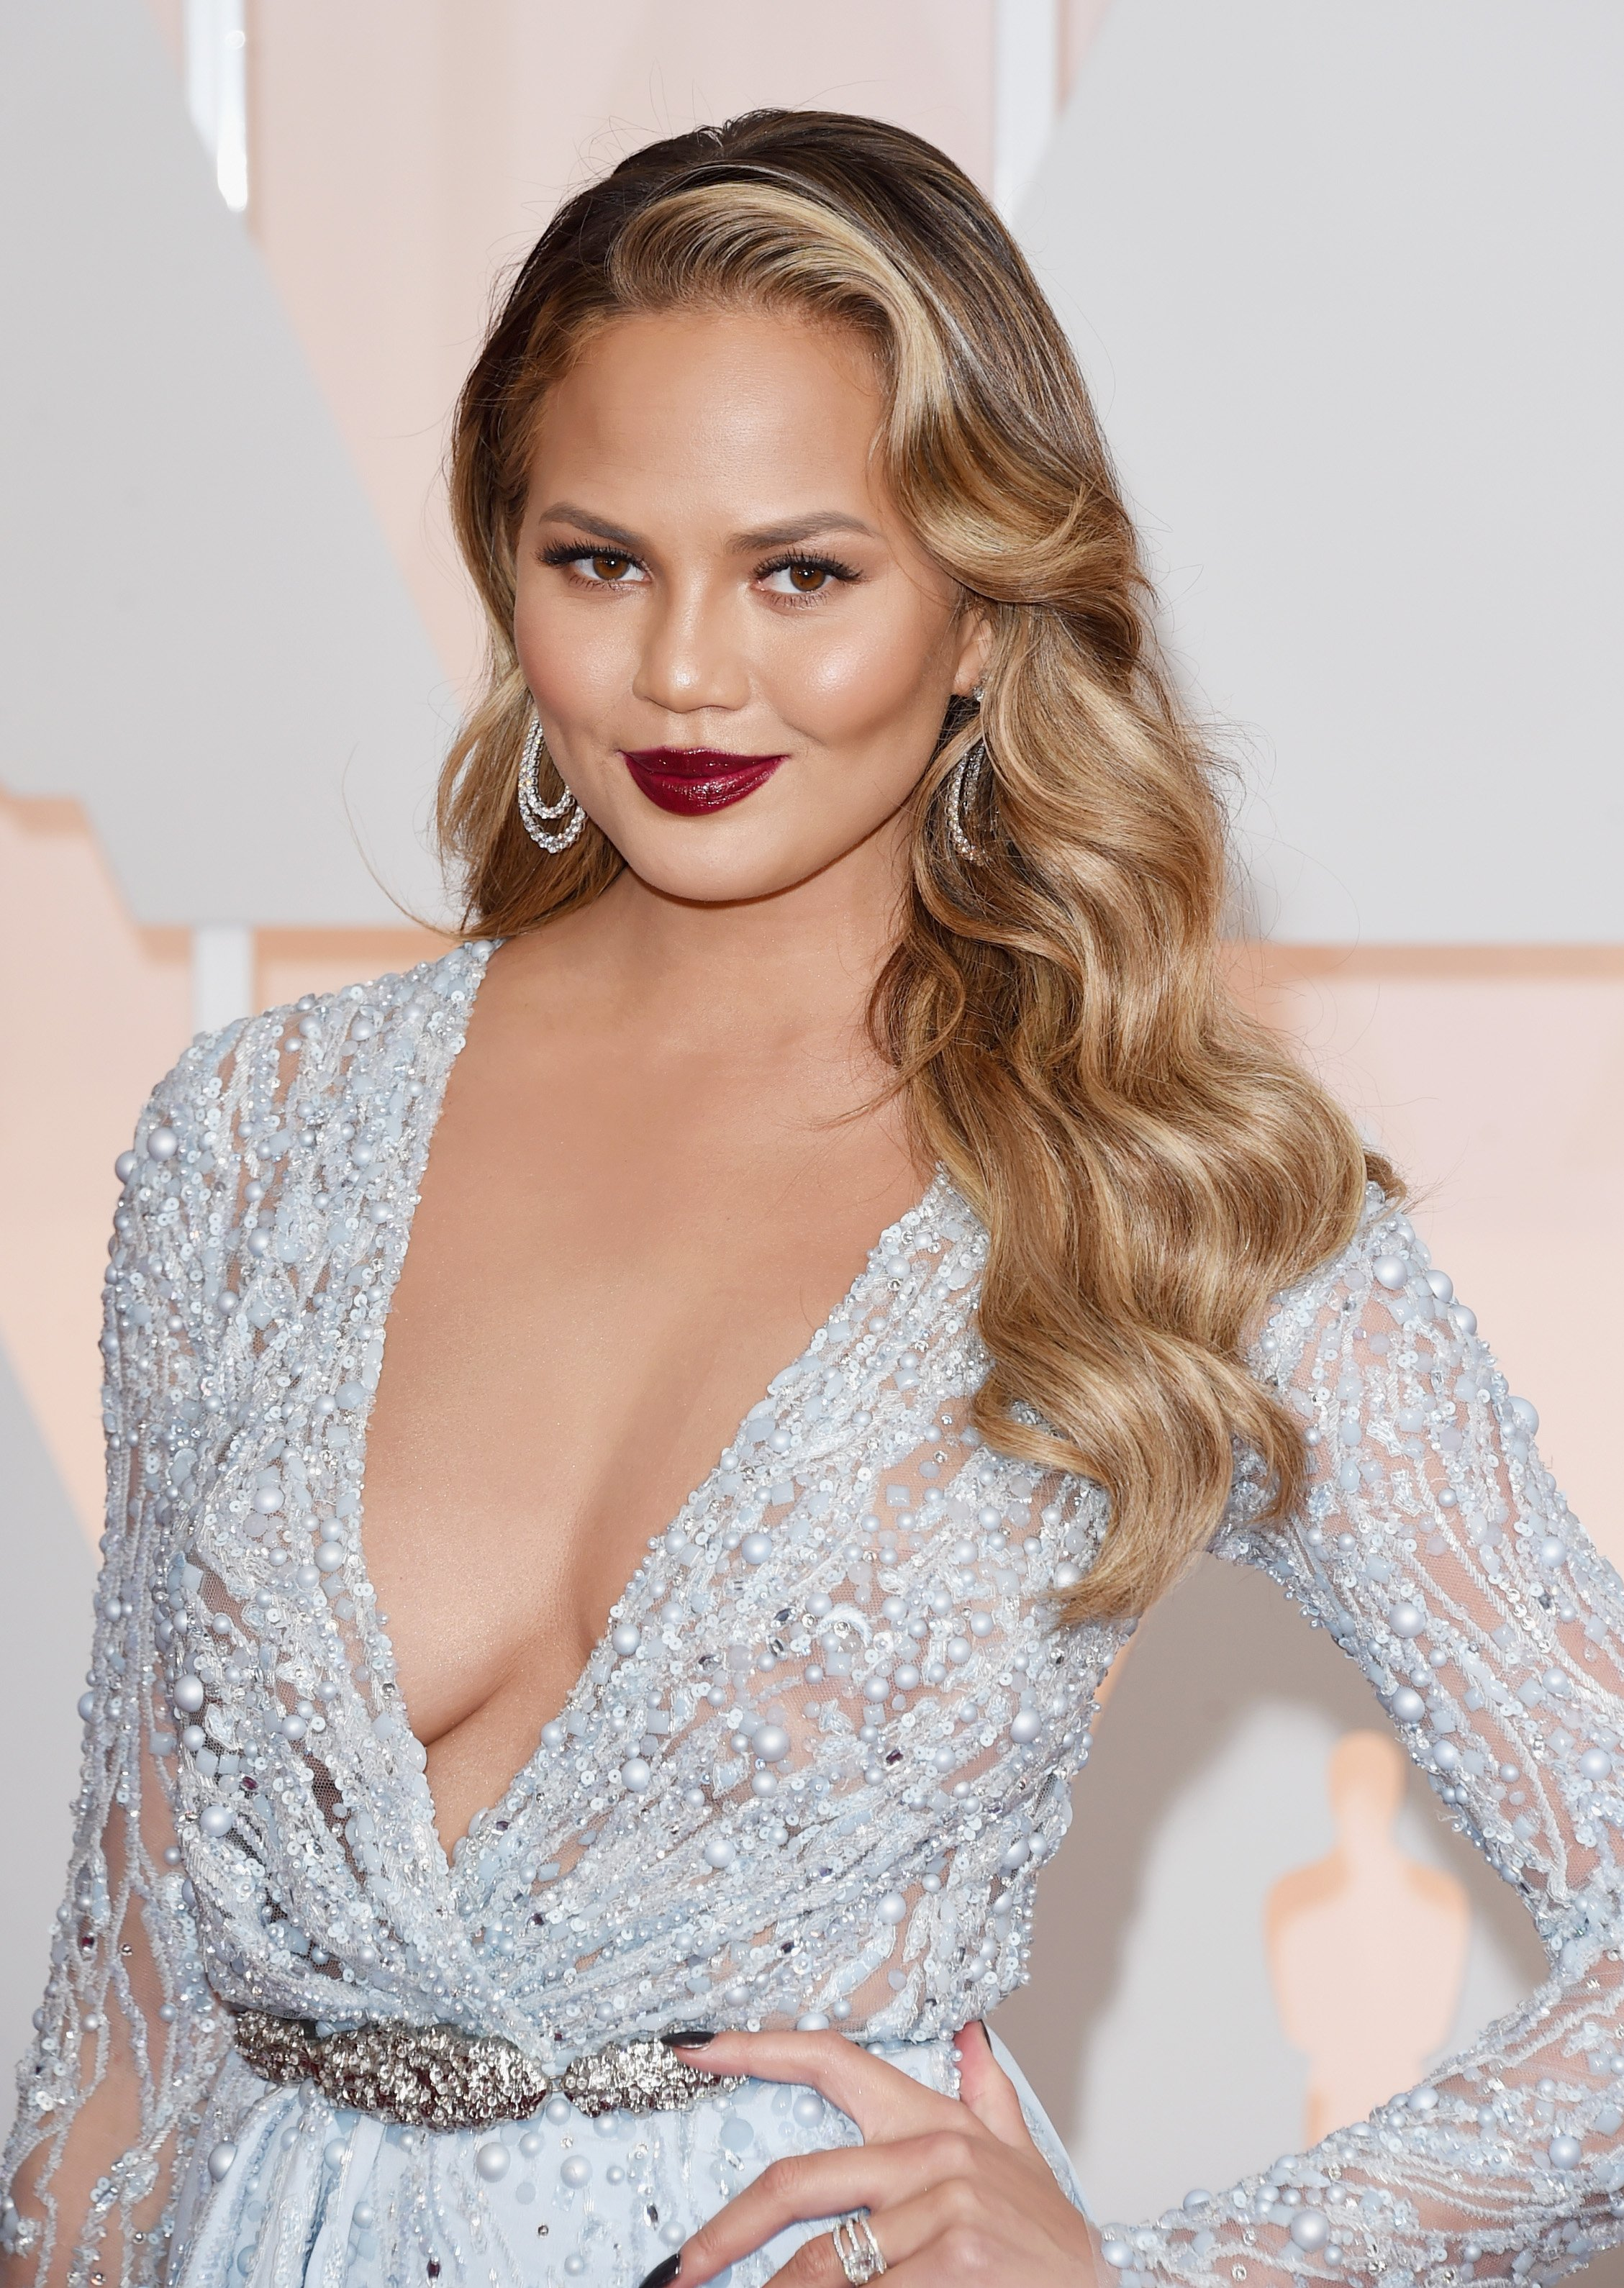 Chrissy Teigen attending  the Annual Academy Awards in California. Source   Photo: Getty Images